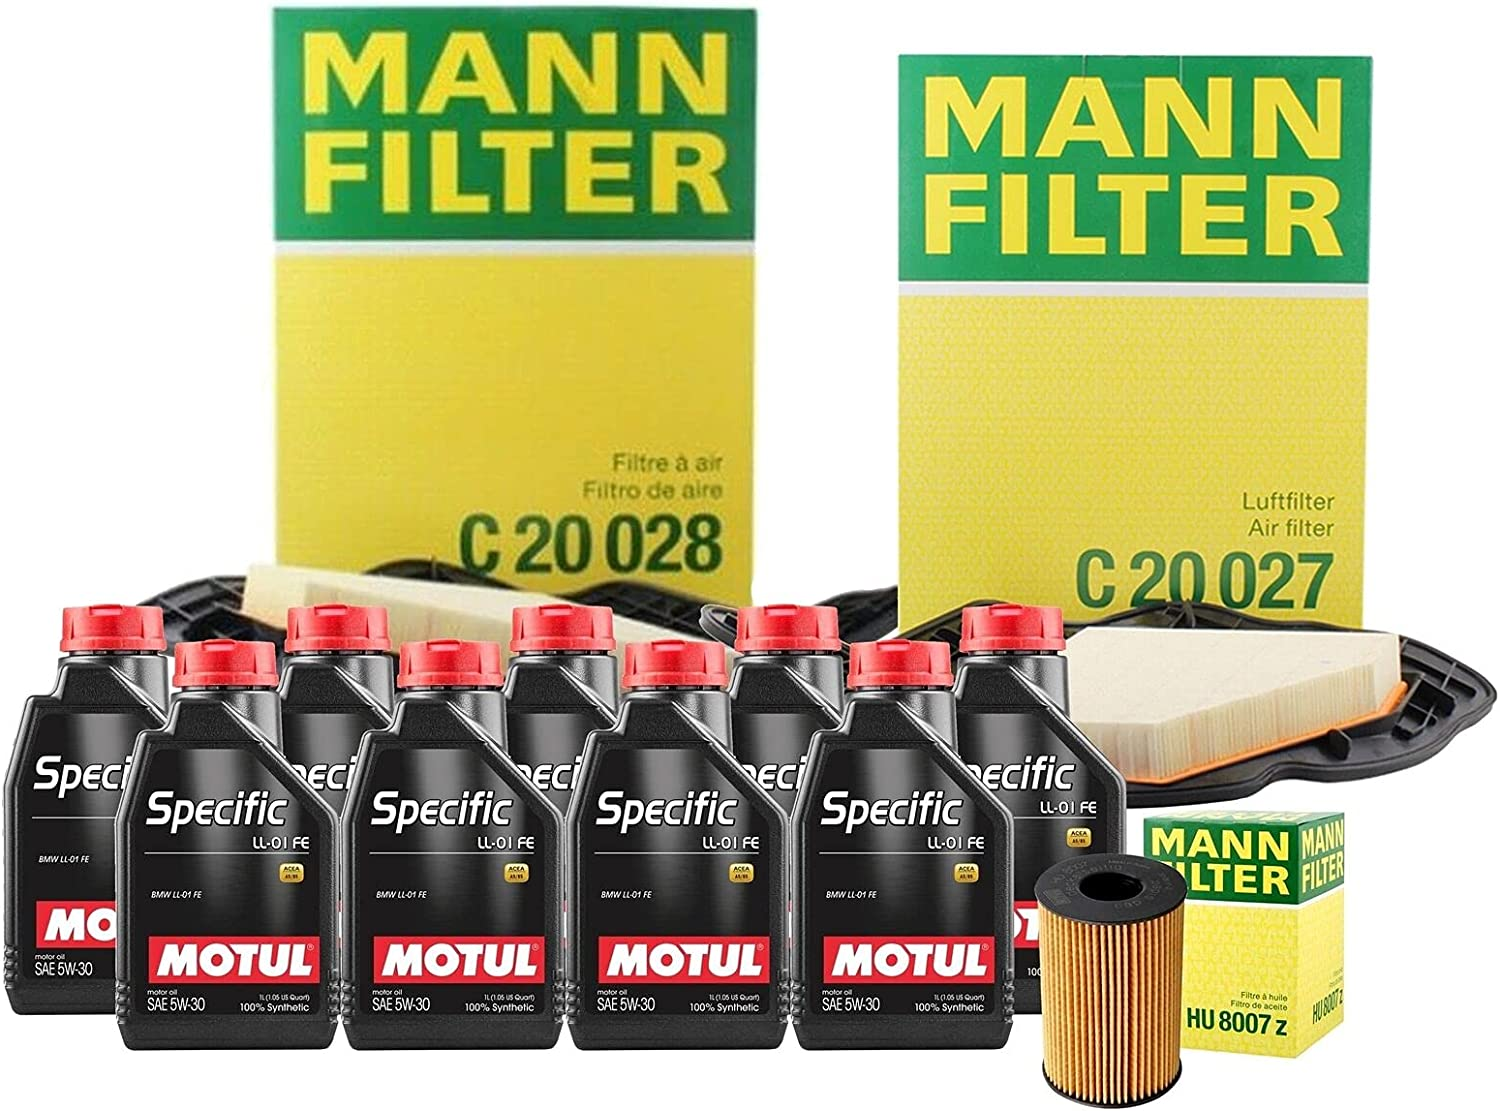 9L Gifts SPECIFIC LL01 FE Quality inspection 5W30 Filter Compati Air Change Oil Motor kit